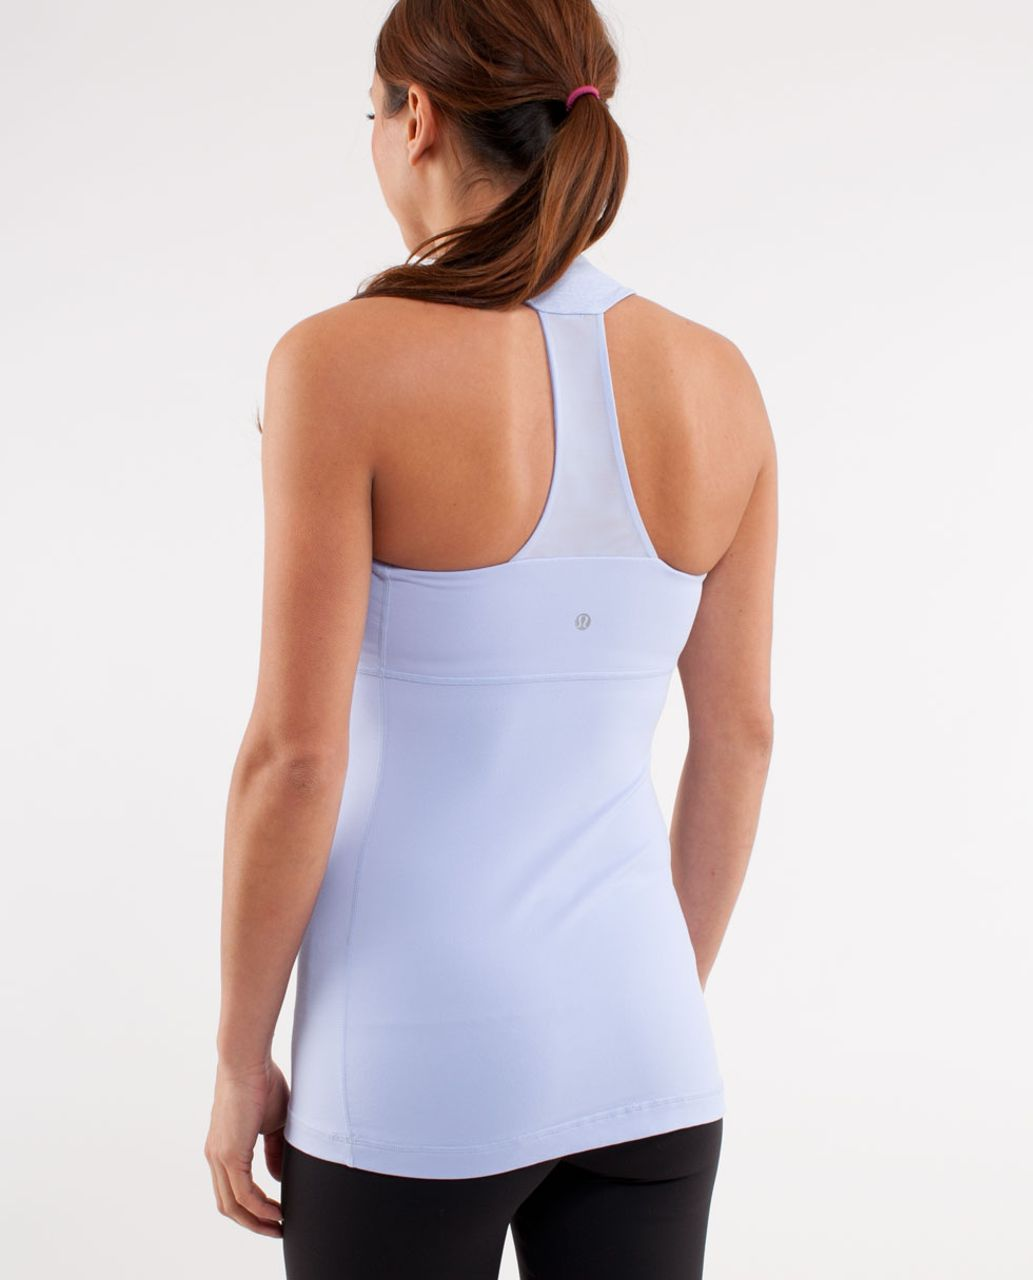 Lululemon Scoop Neck Tank - Lavender Dusk /  Heathered Lavender Dusk